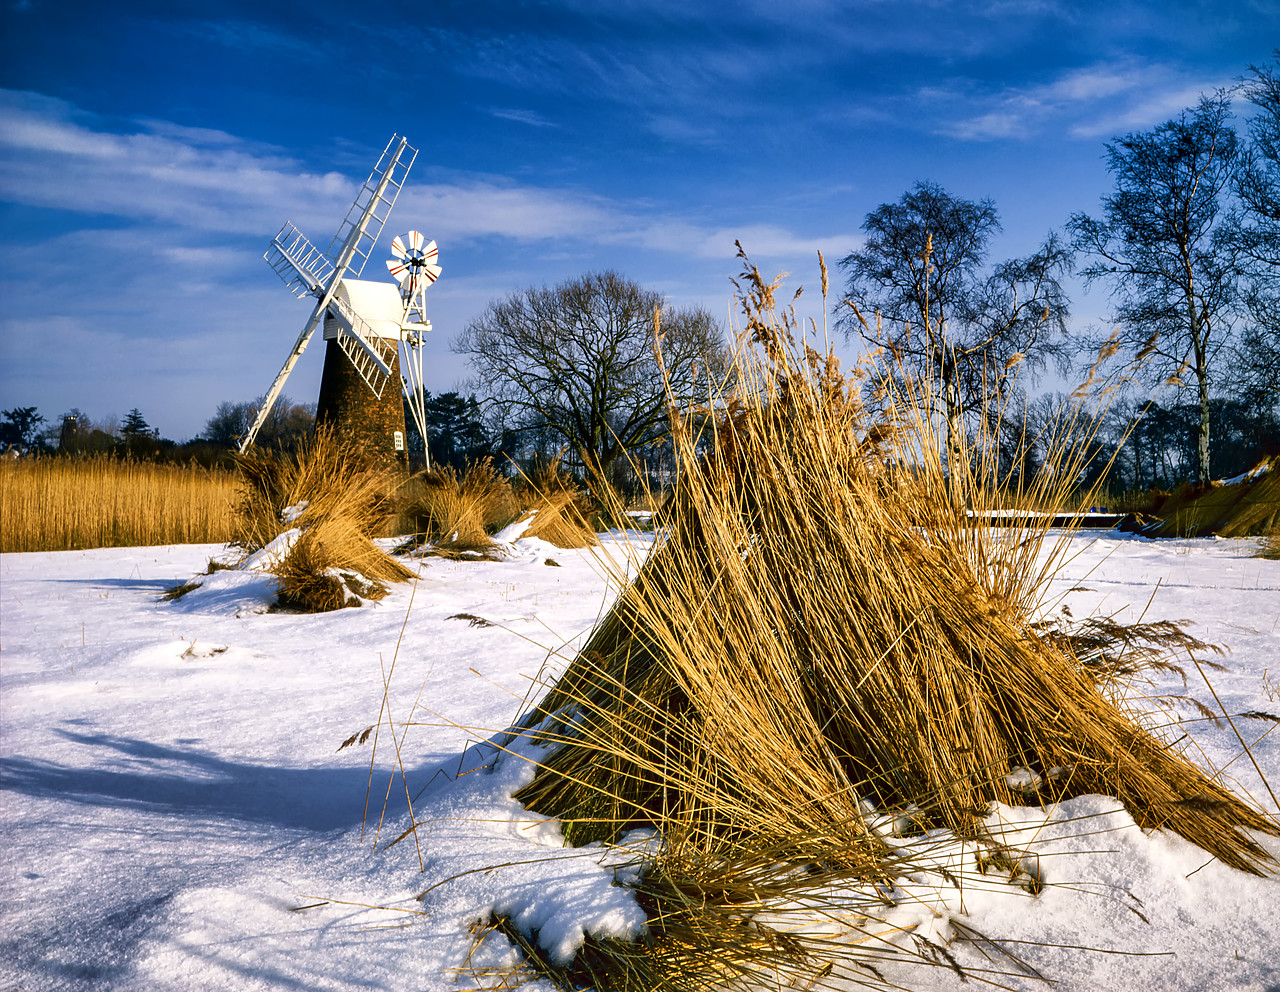 #400140-1 - Turf Fen Mill in Winter, Norfolk Broads National Park, Norfolk, England